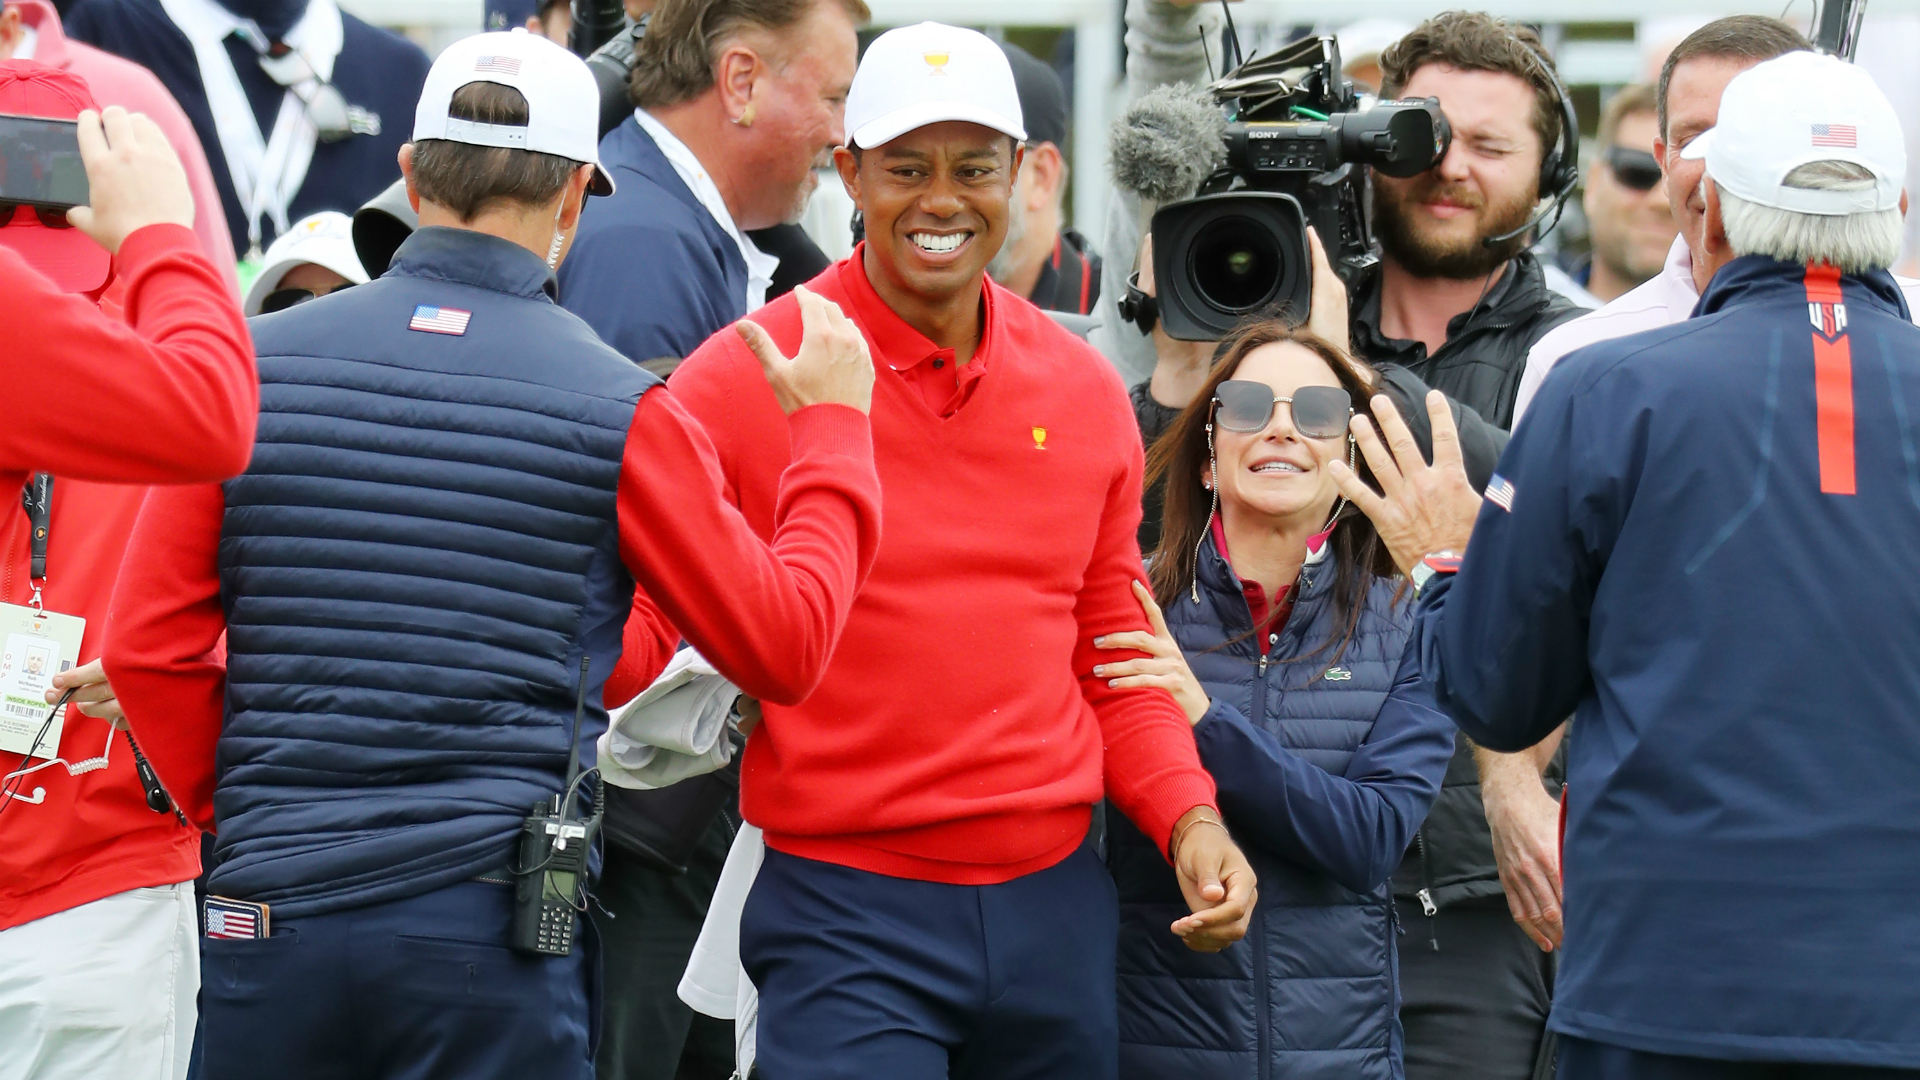 BREAKING NEWS: USA complete incredible comeback to win Presidents Cup